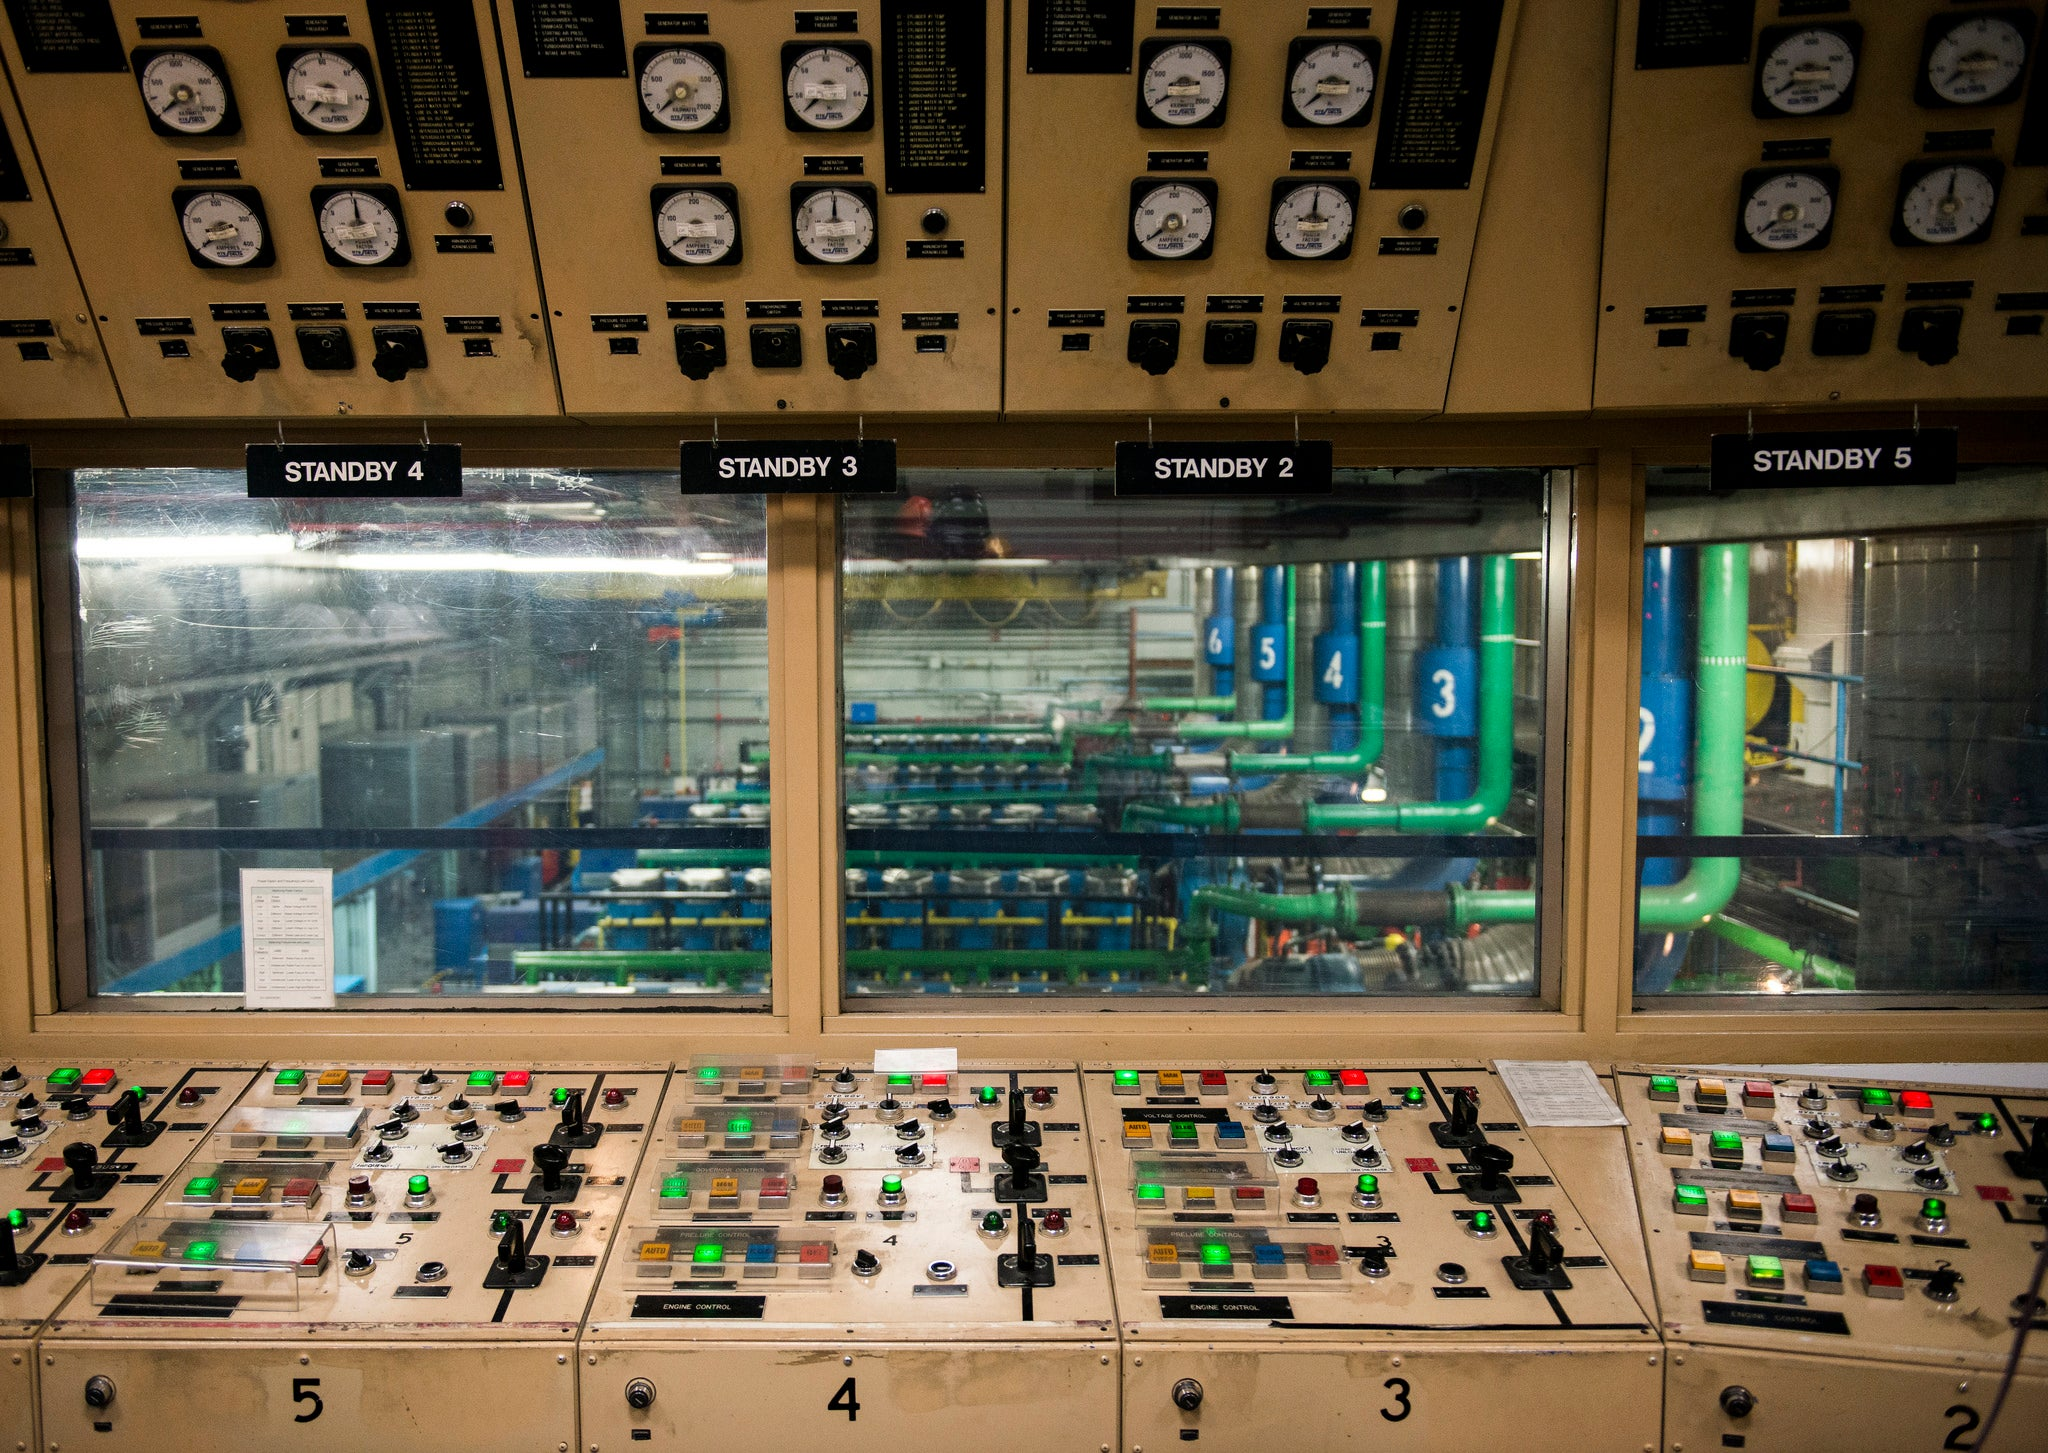 Peek Inside Skynet's 50-Year-Old Blast-Proof Atomic Bunker